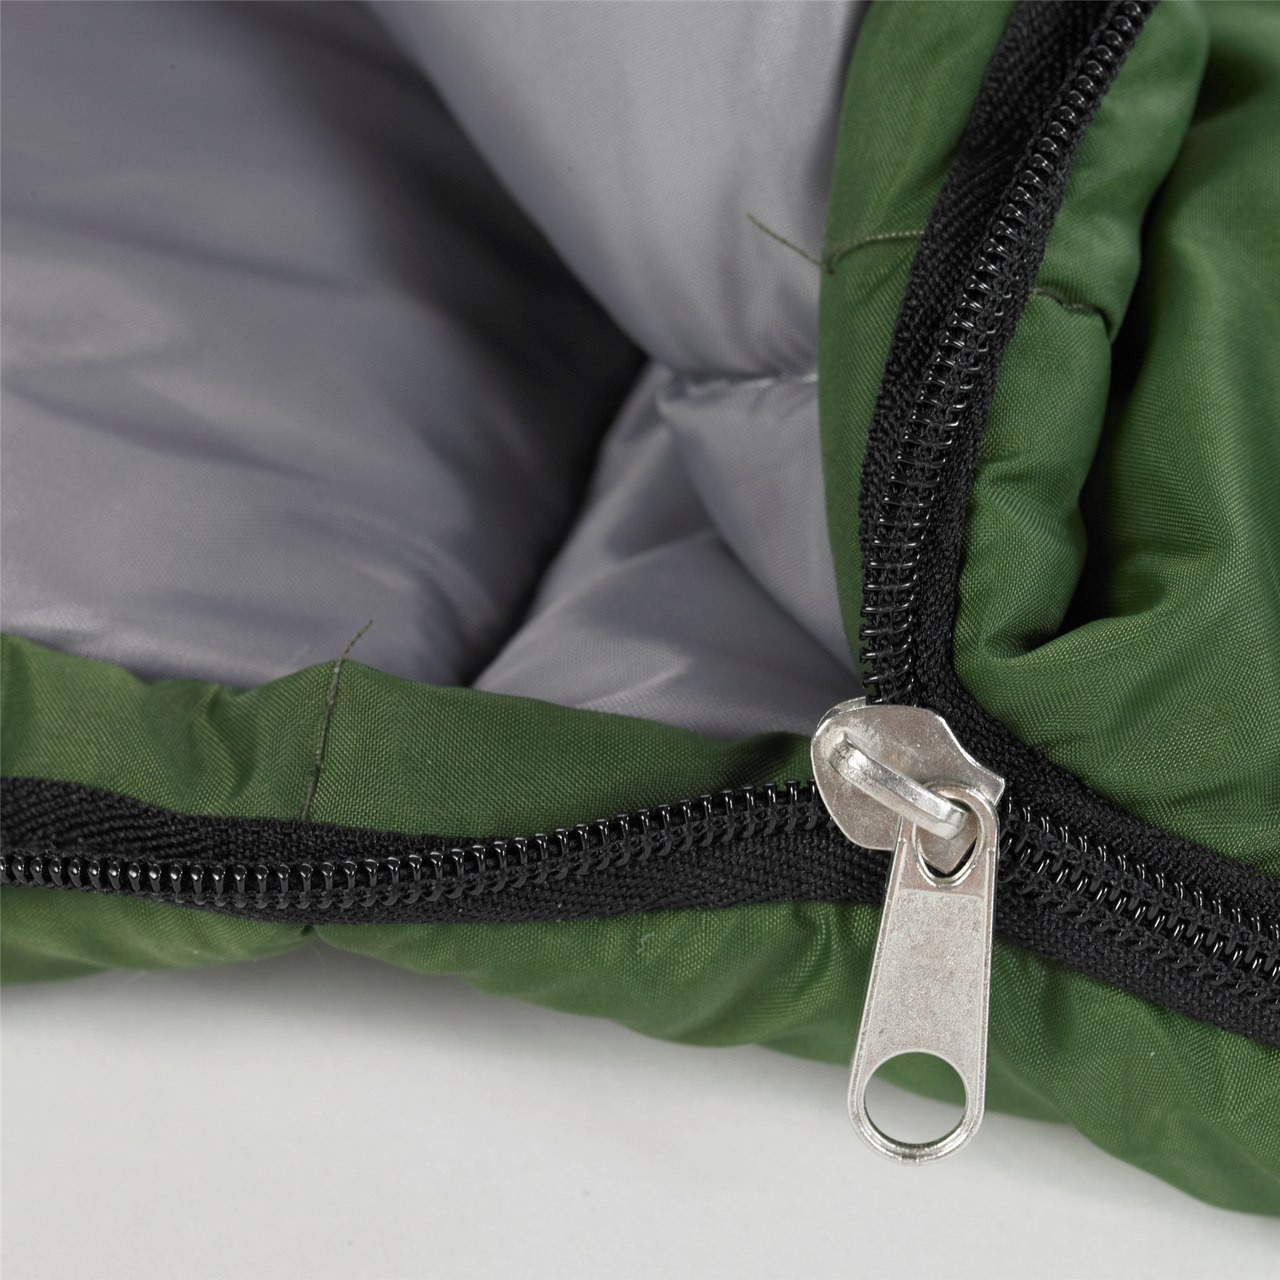 Close up view of the zipper partially unzipped on the Wenzel Kids Summer Camp 40 degree sleeping bag, green